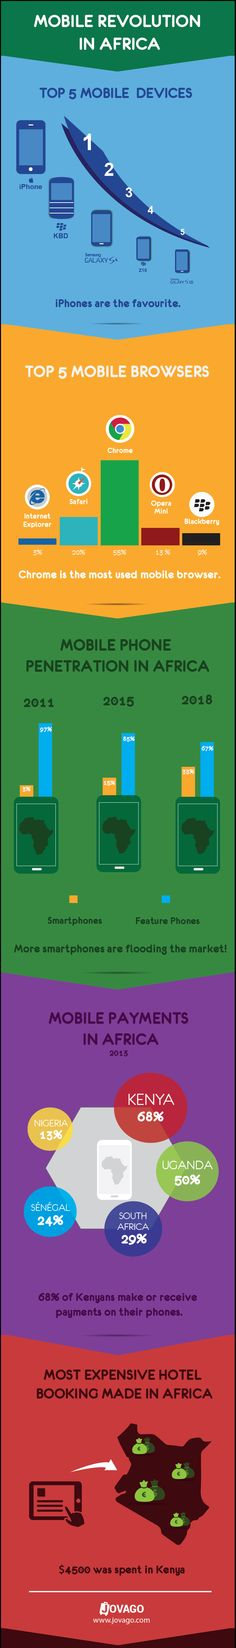 The mobile revolution in Africa